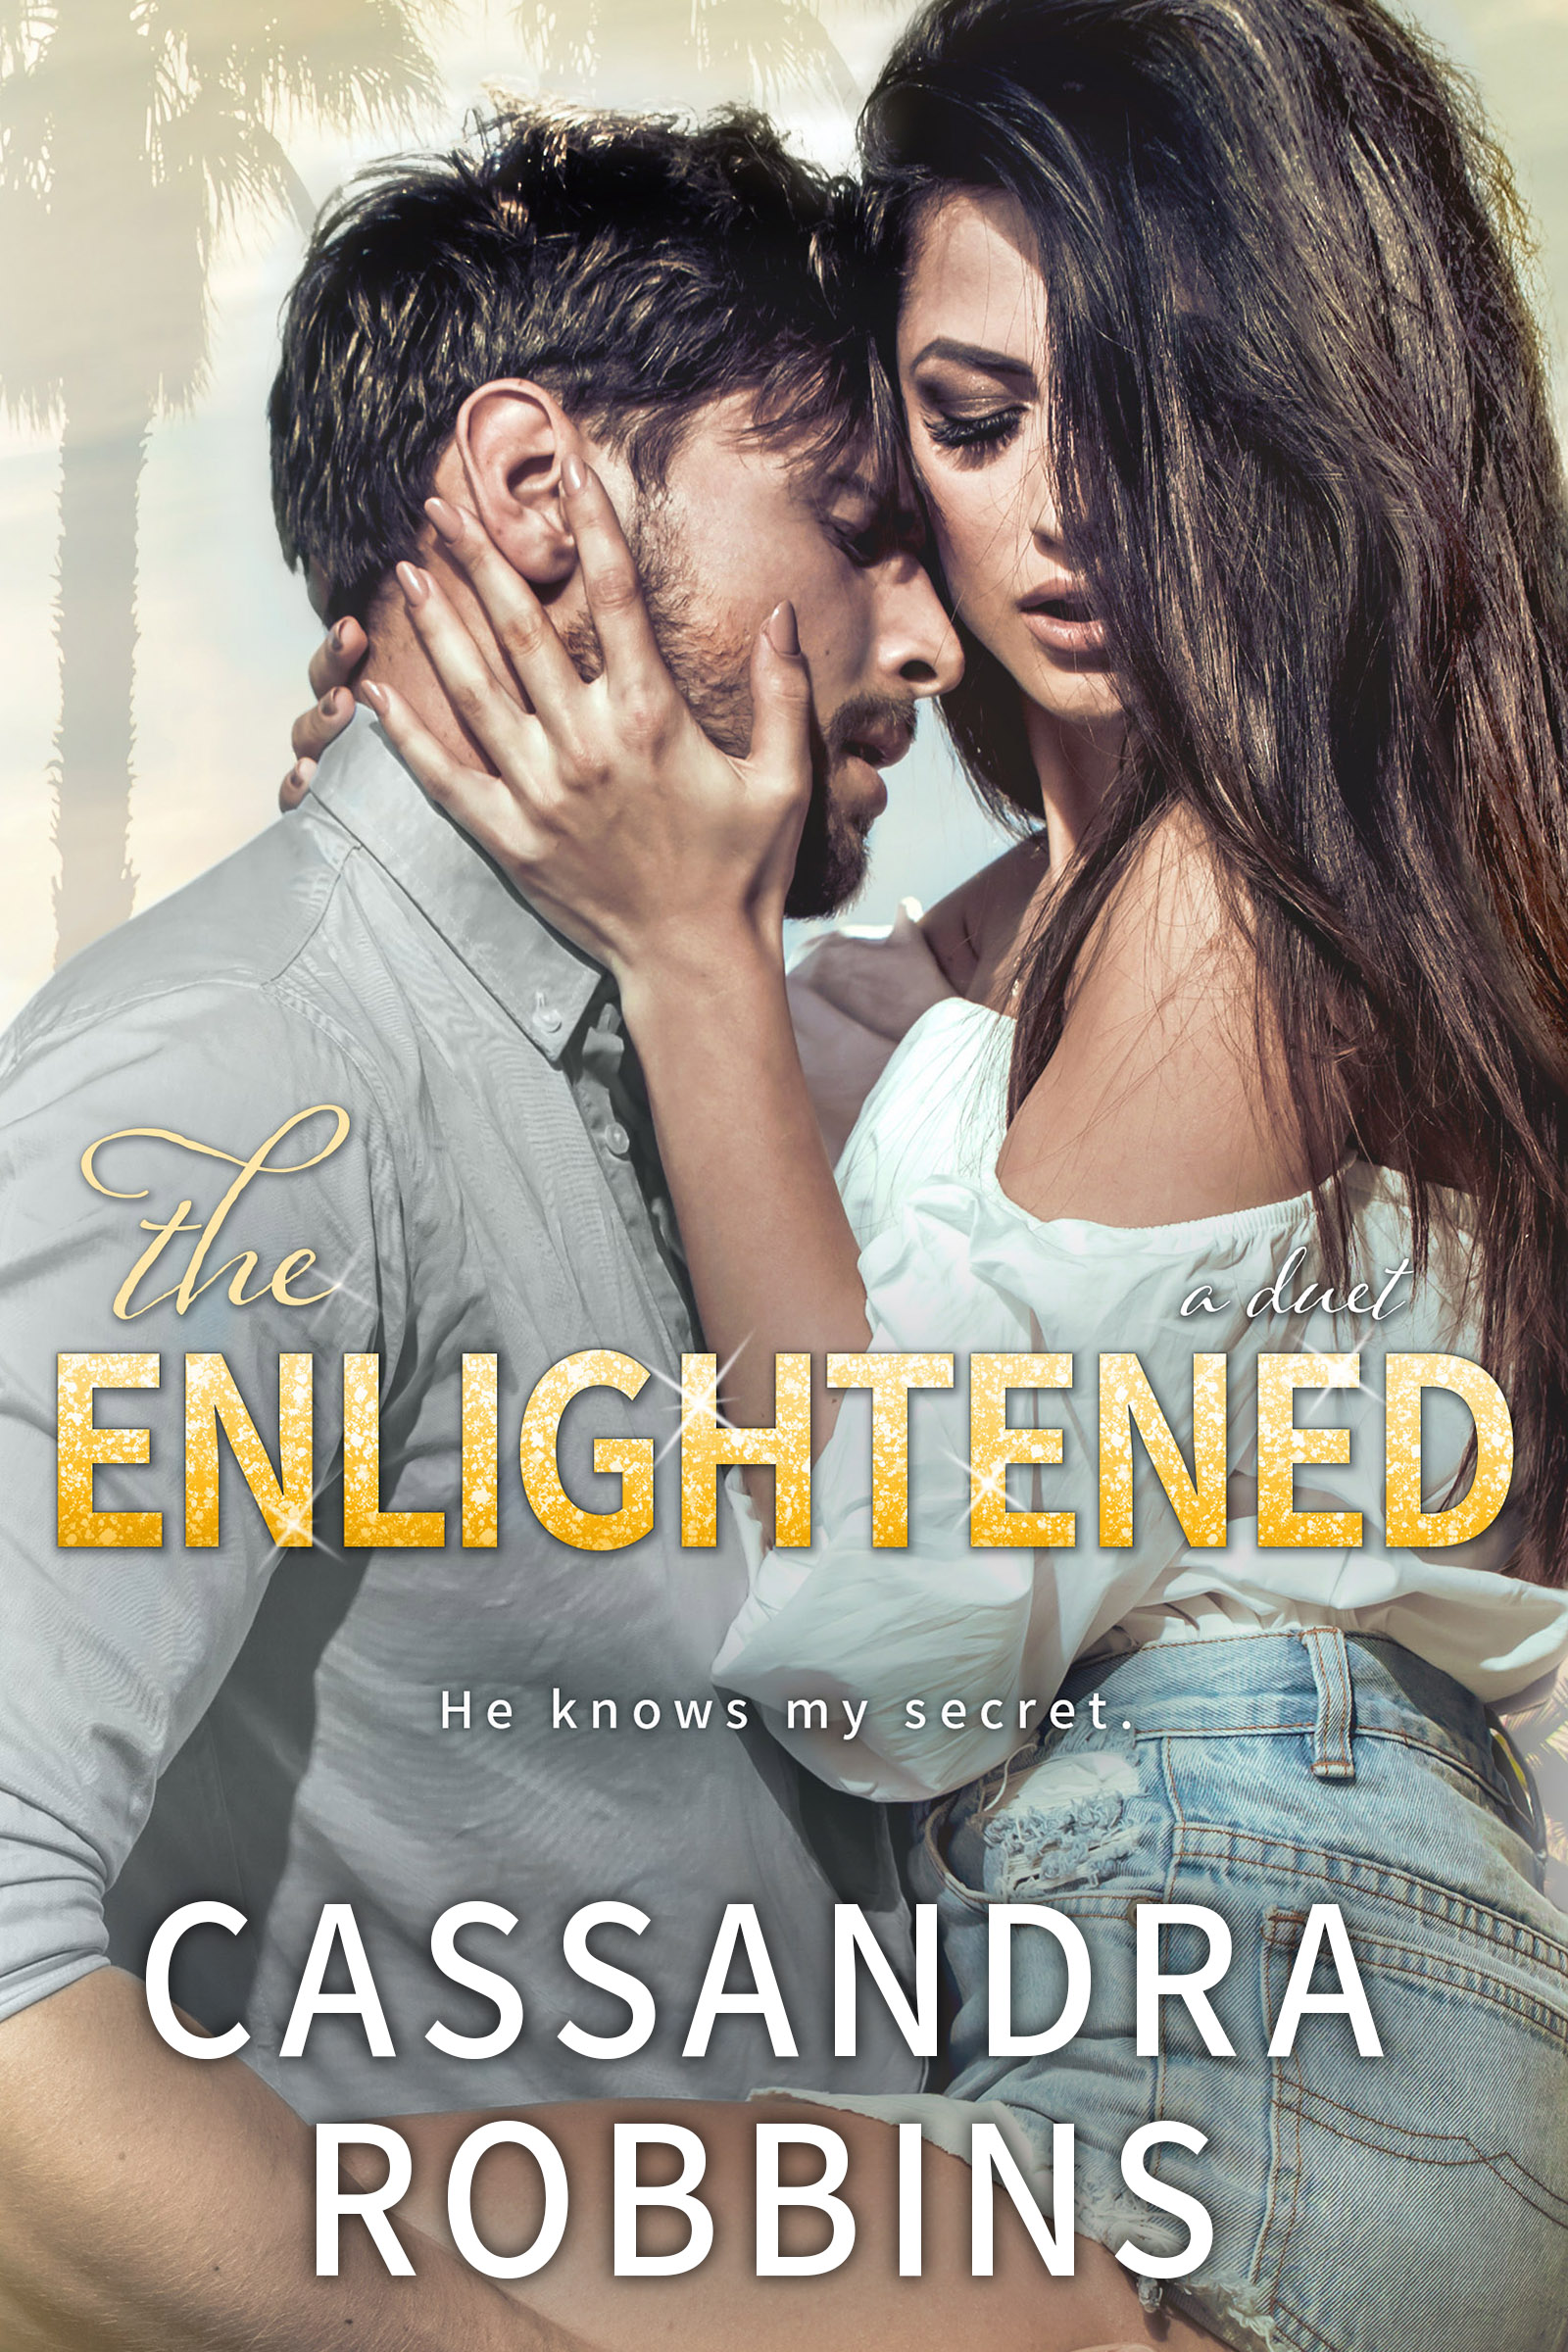 The Enlightened Amazon_KOBO_iBooks